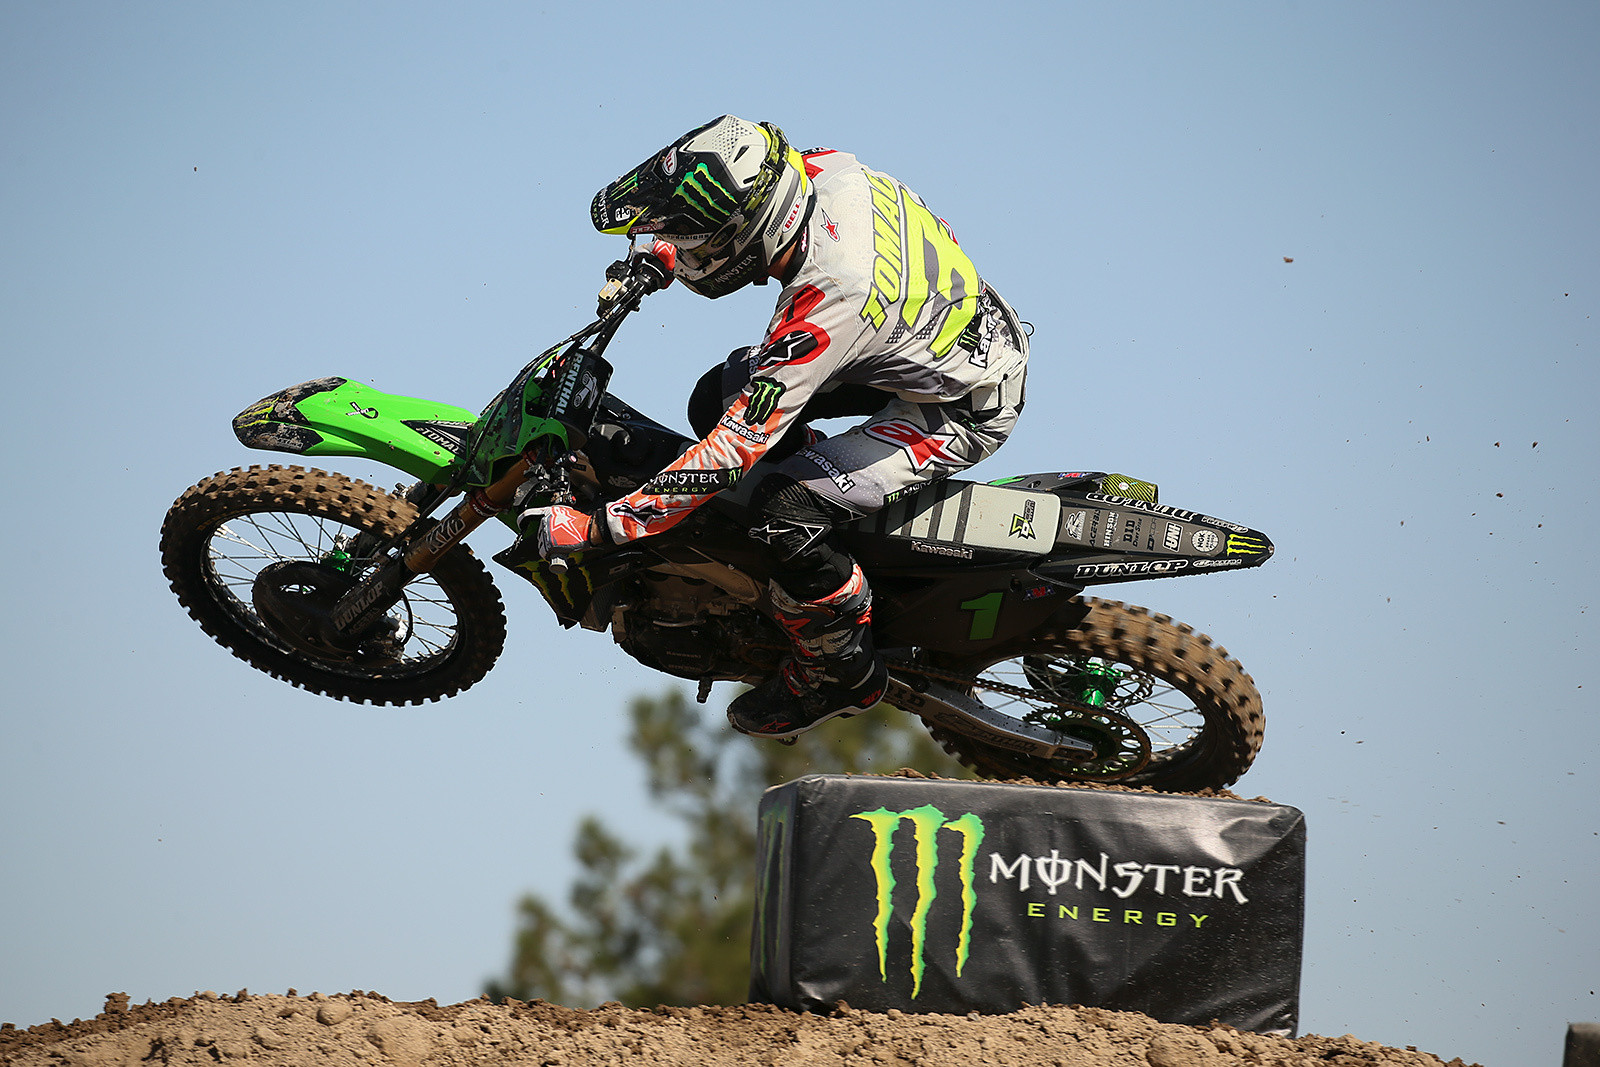 Last year's winner, Eli Tomac, was the second-fastest in the Cup class.